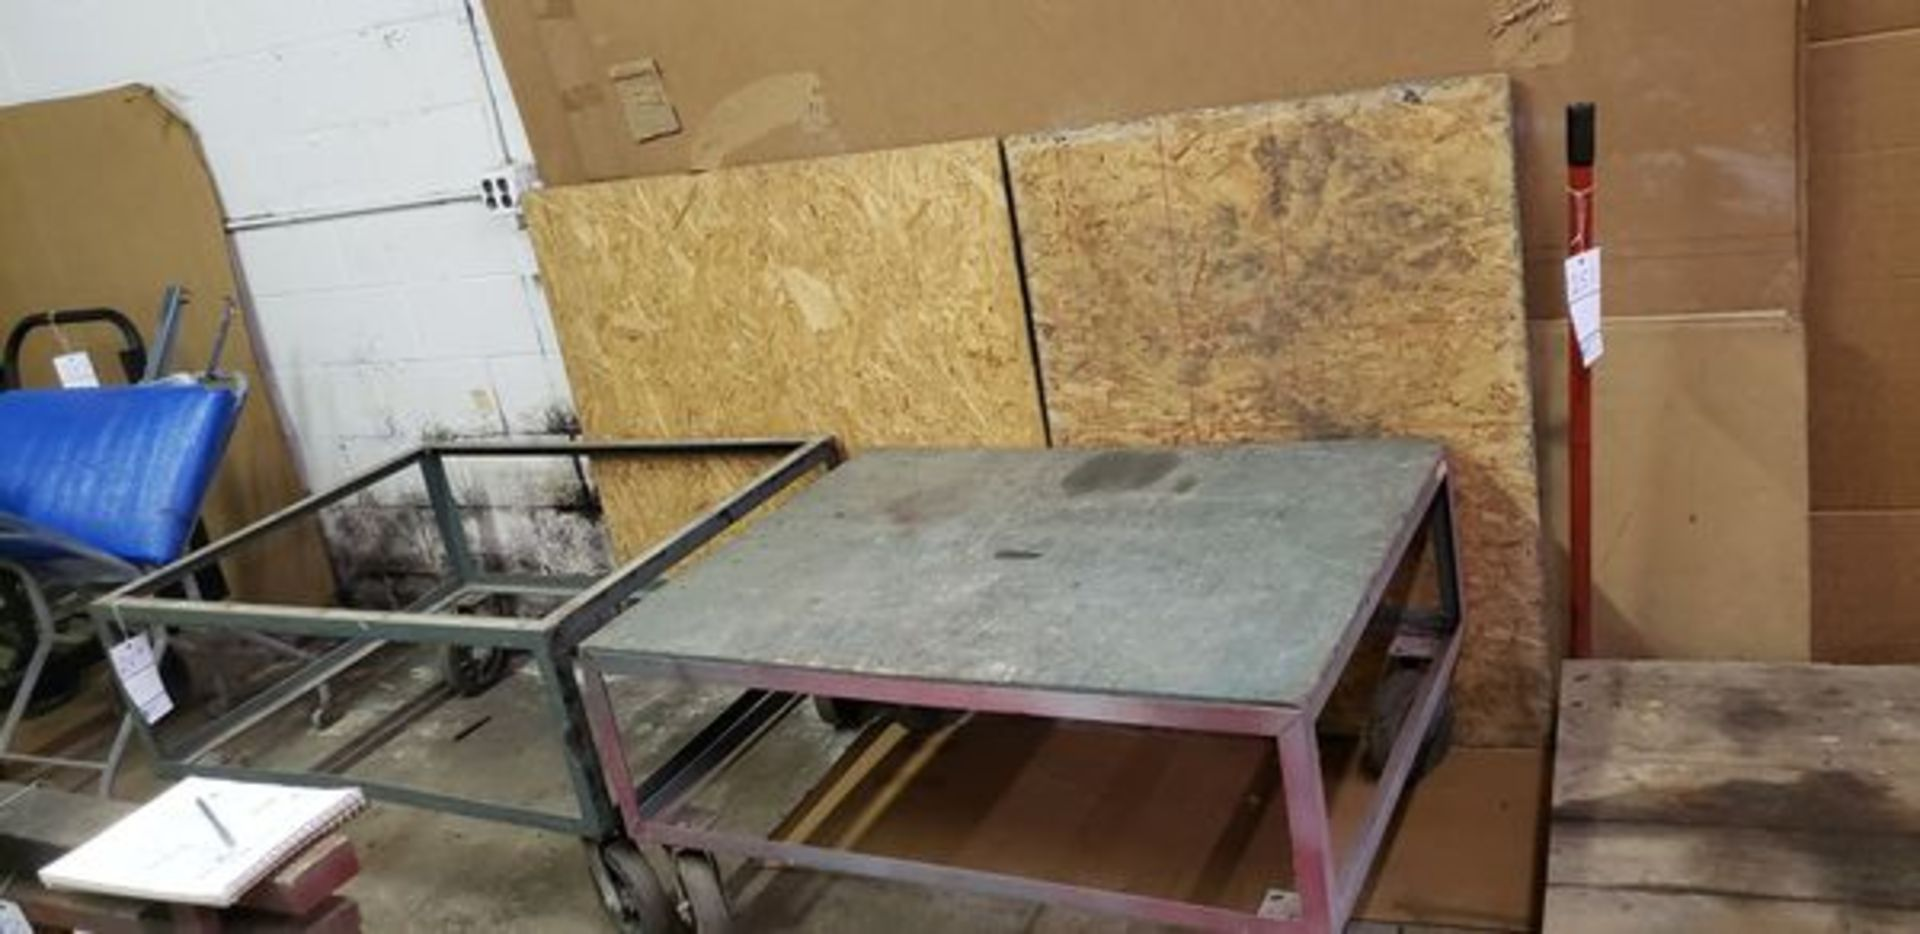 SHOP CARTS WITH EXTRA WOOD - Image 2 of 2